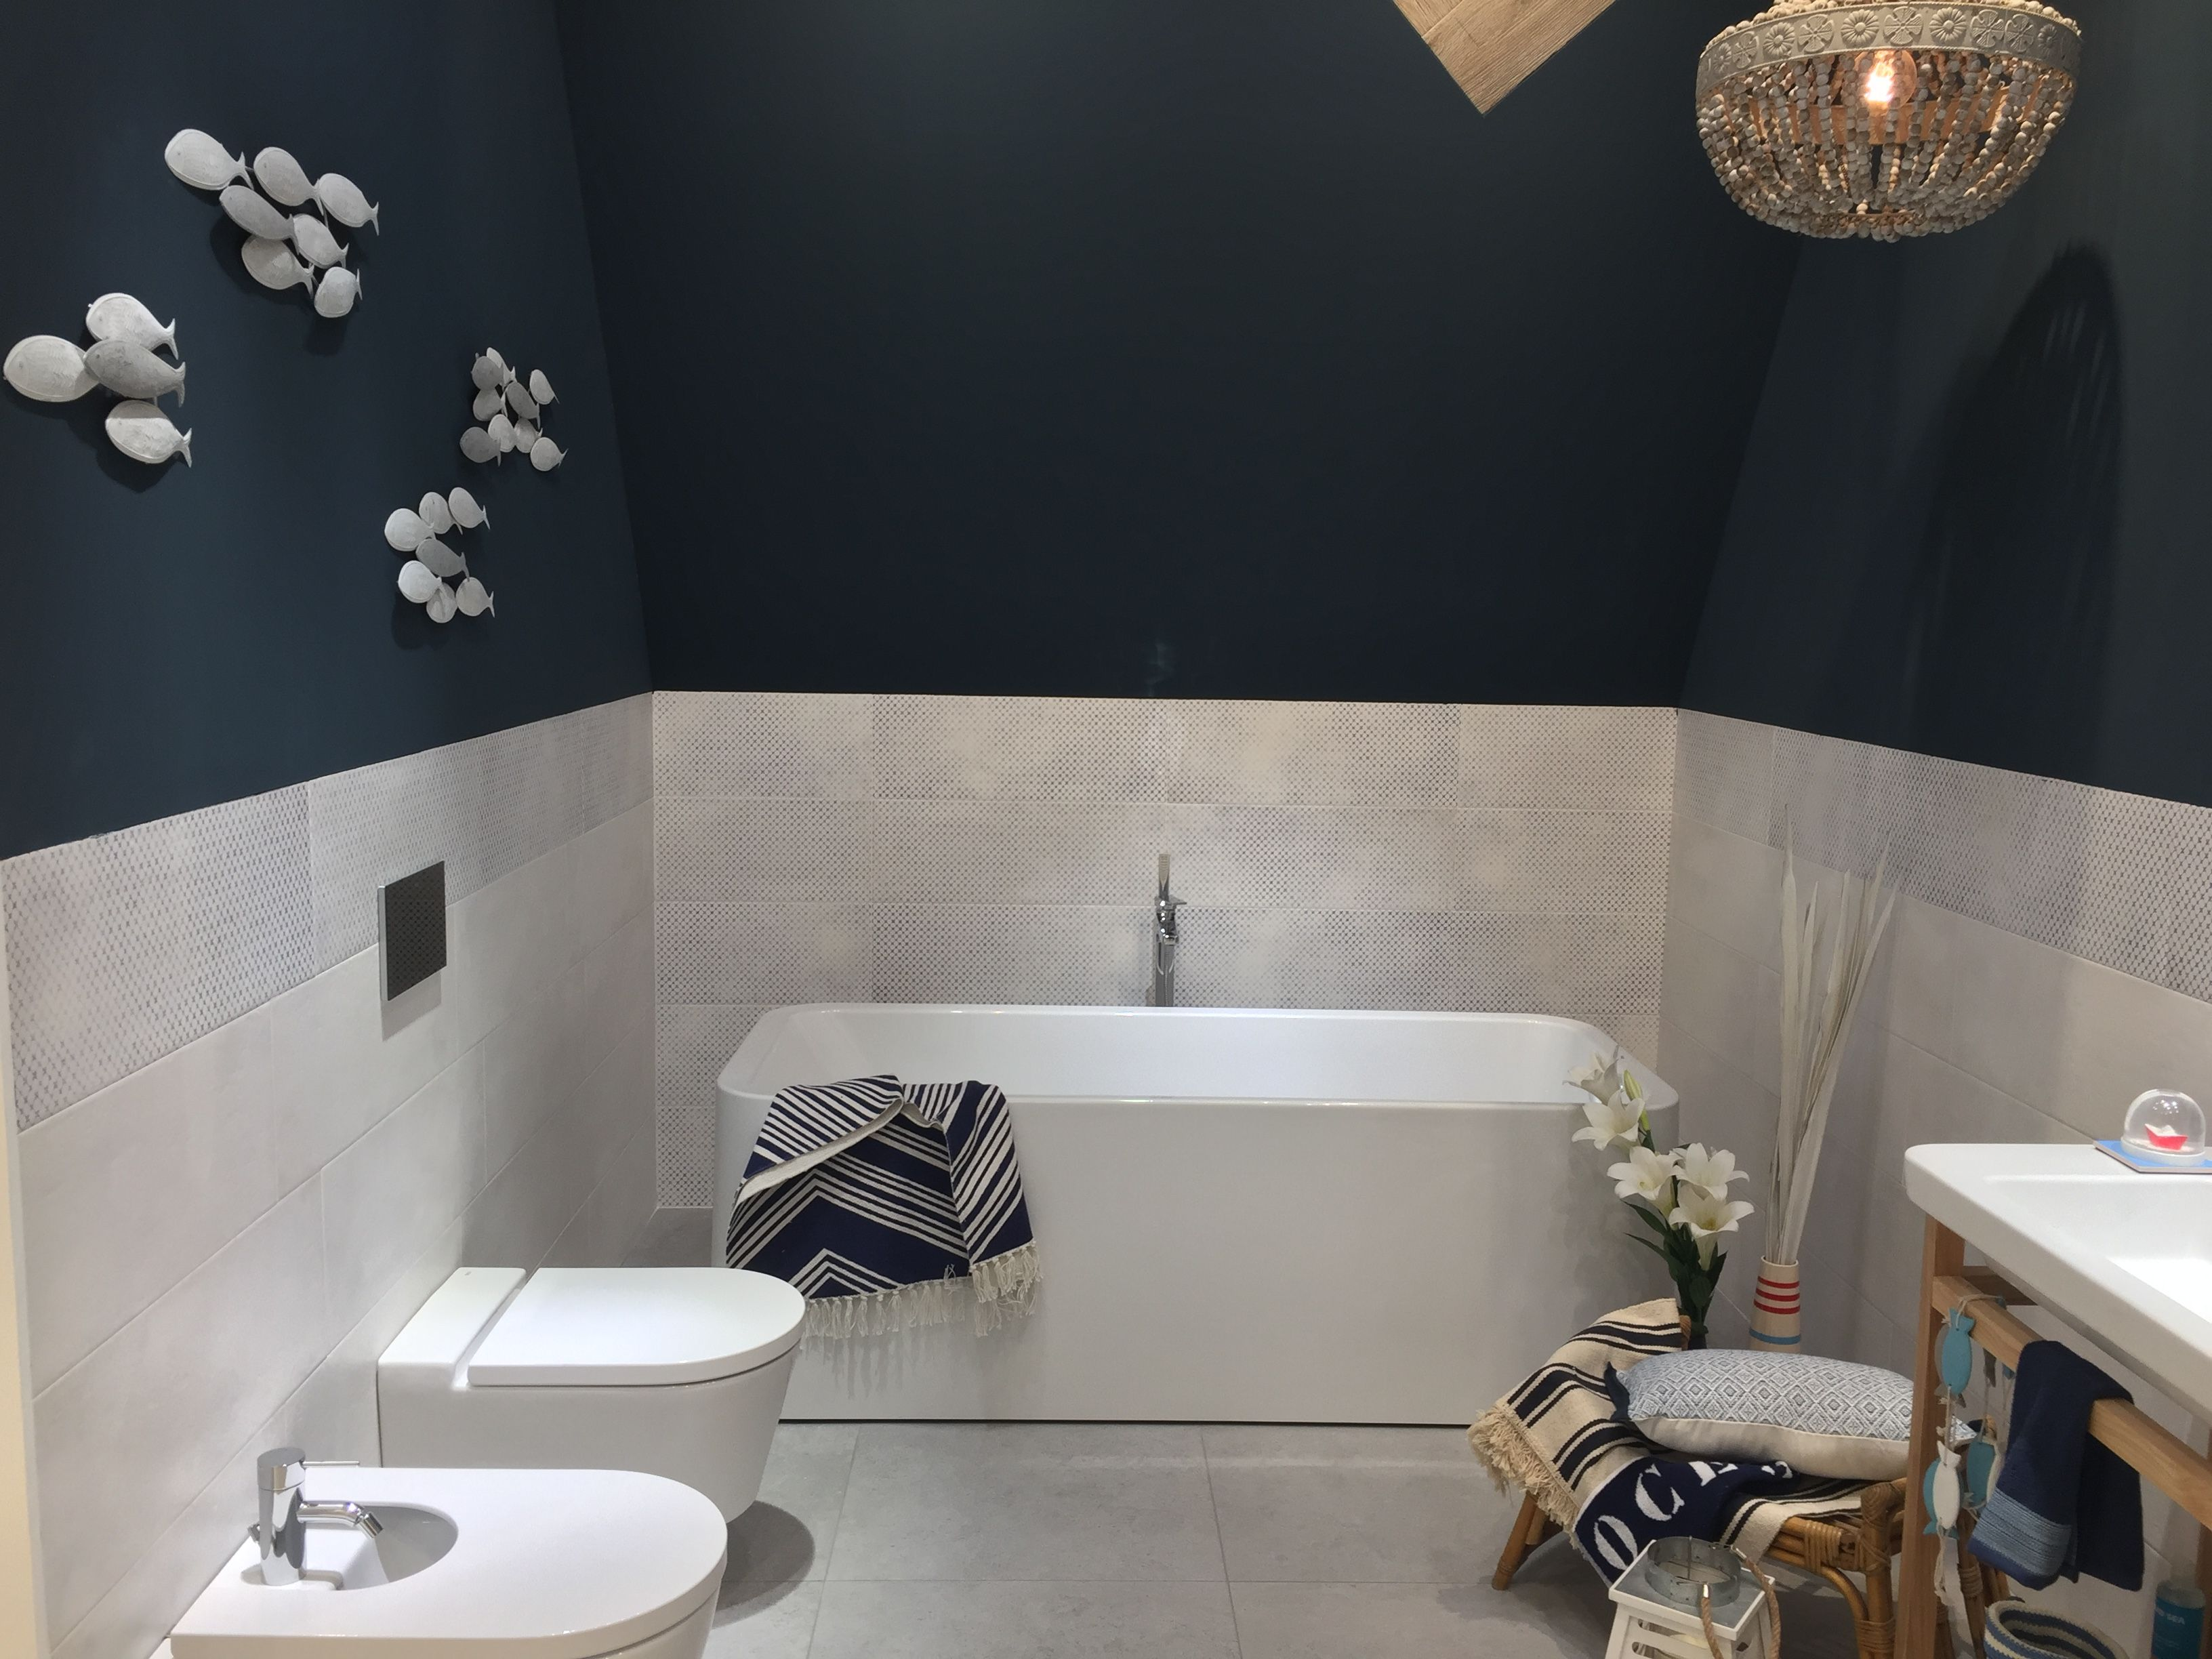 15 best roca at cersaie 2016 images on pinterest product roca tile usa is a world wide leader in manufacturing distributing and marketing of high quality ceramic tiles dailygadgetfo Images